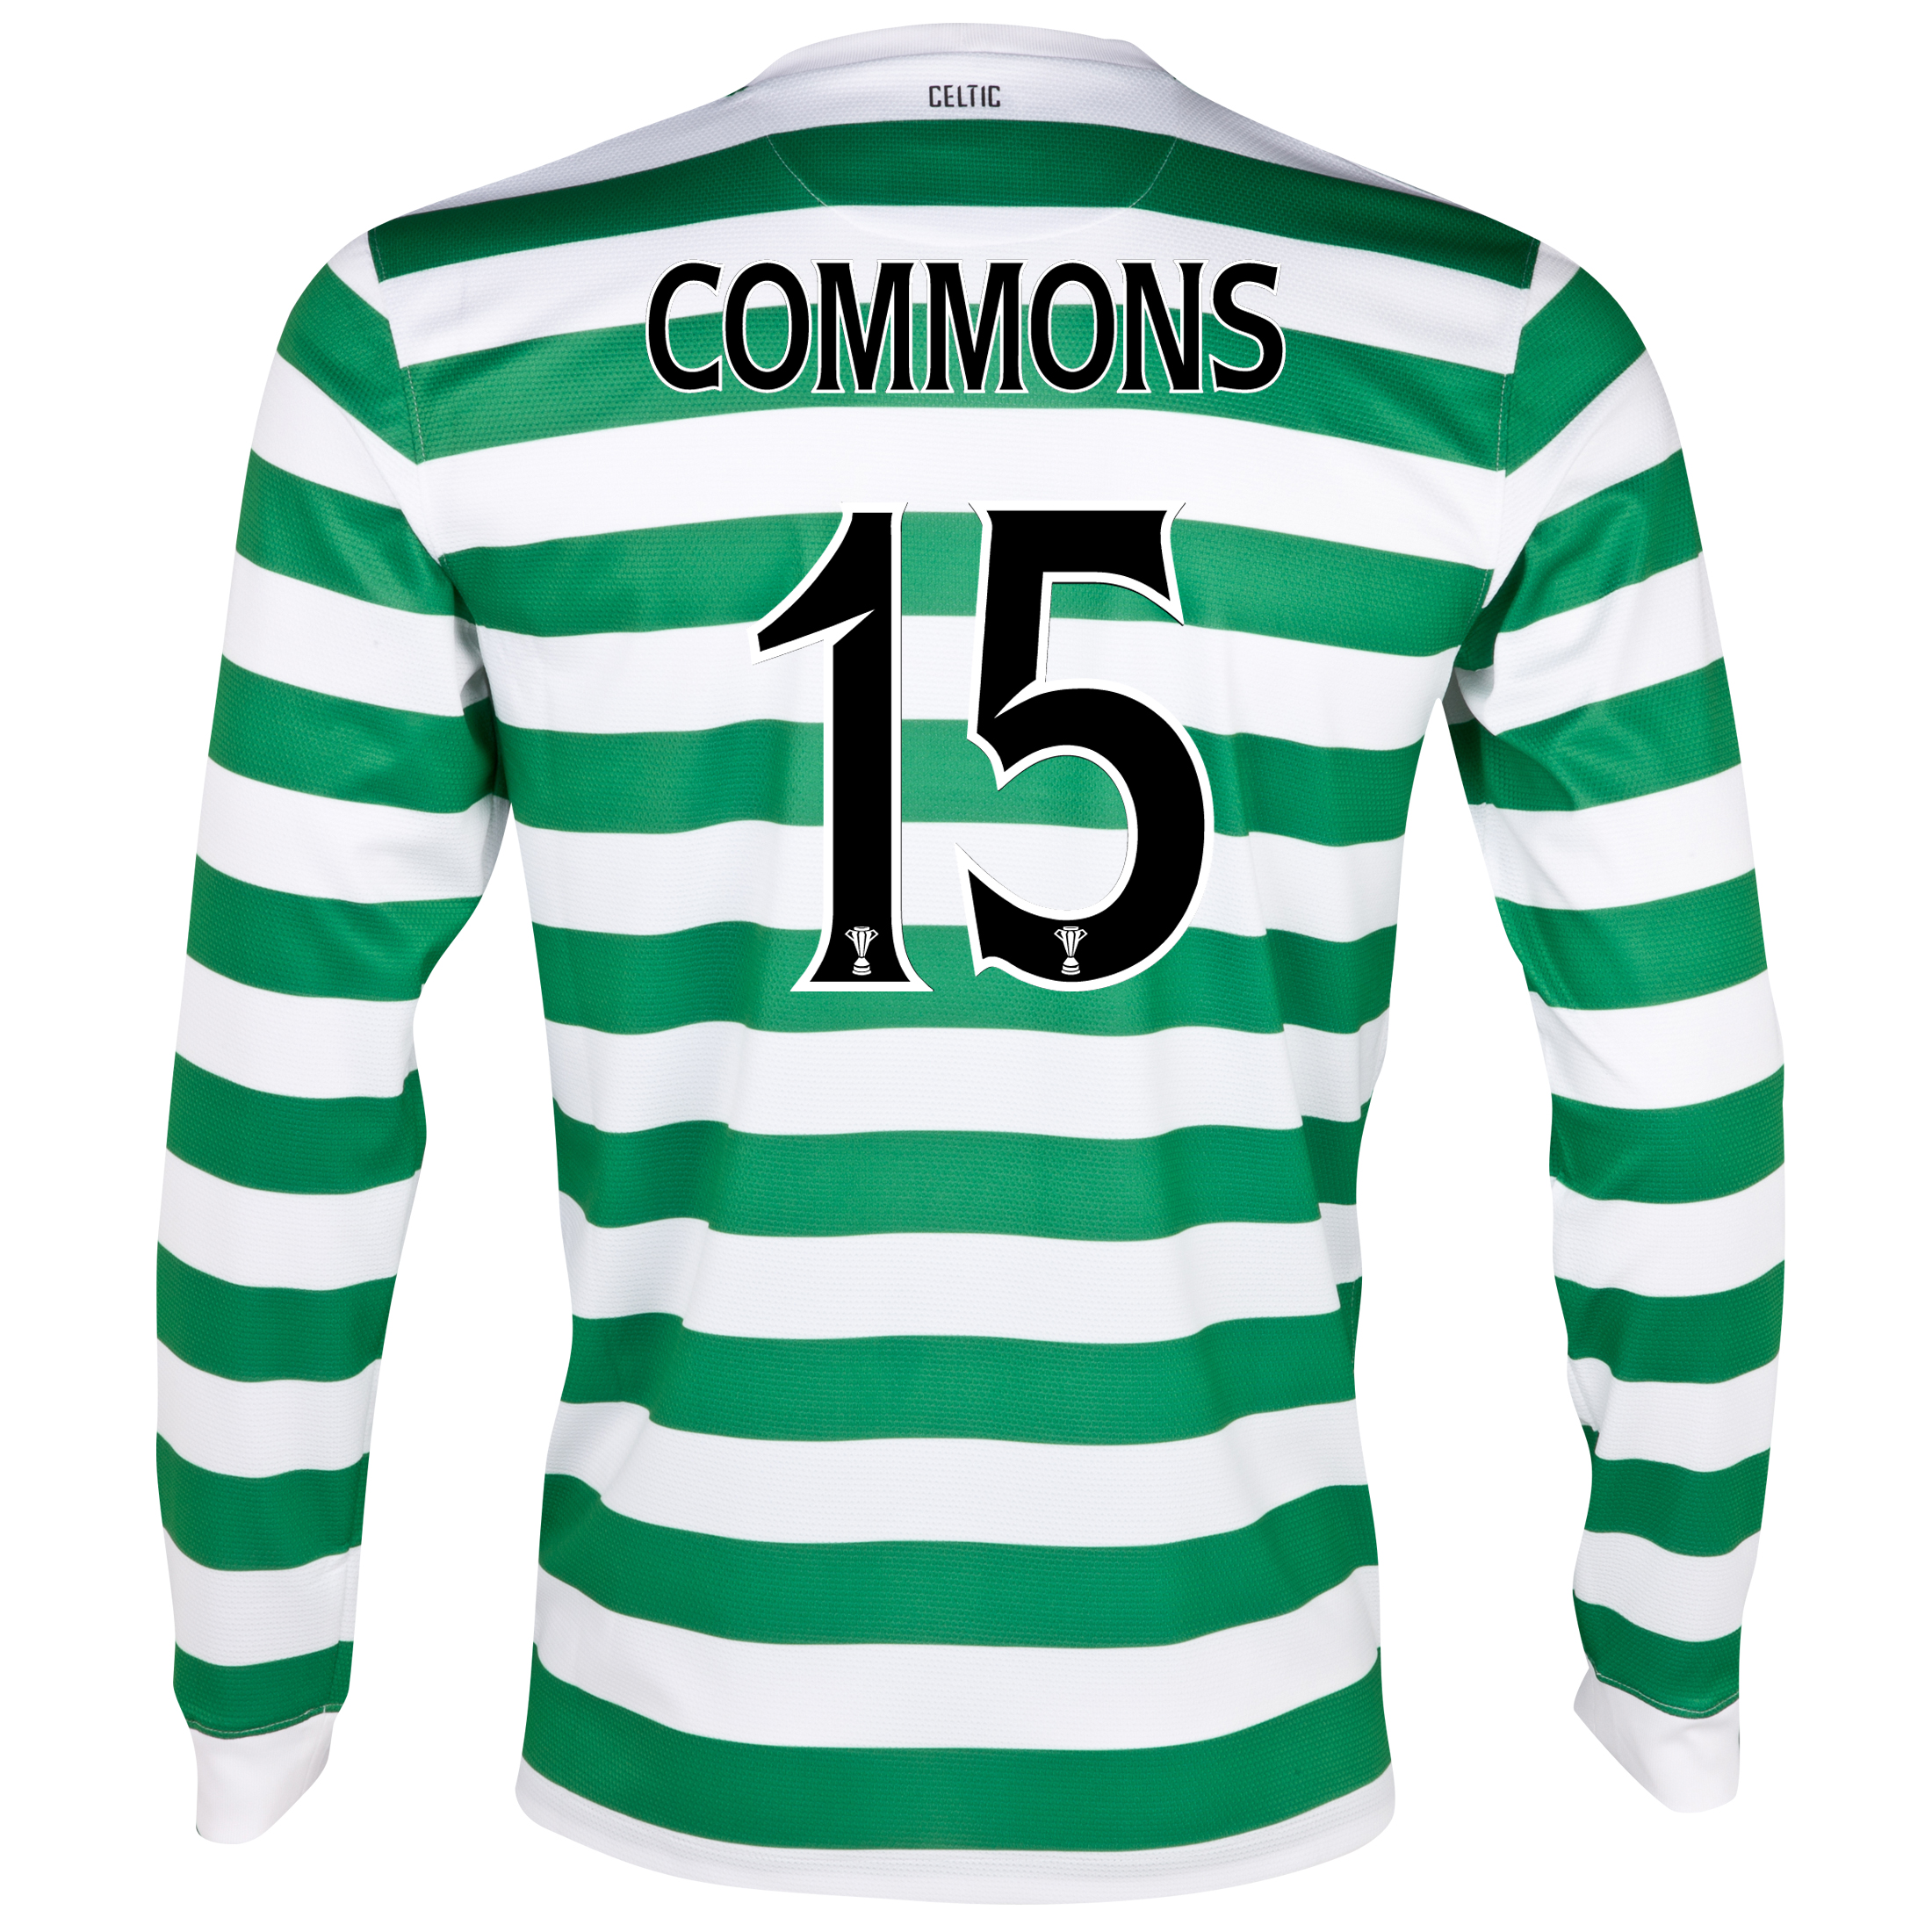 Celtic Home Shirt 2012/13 - Long Sleeved - No Sponsor with Commons 15 printing